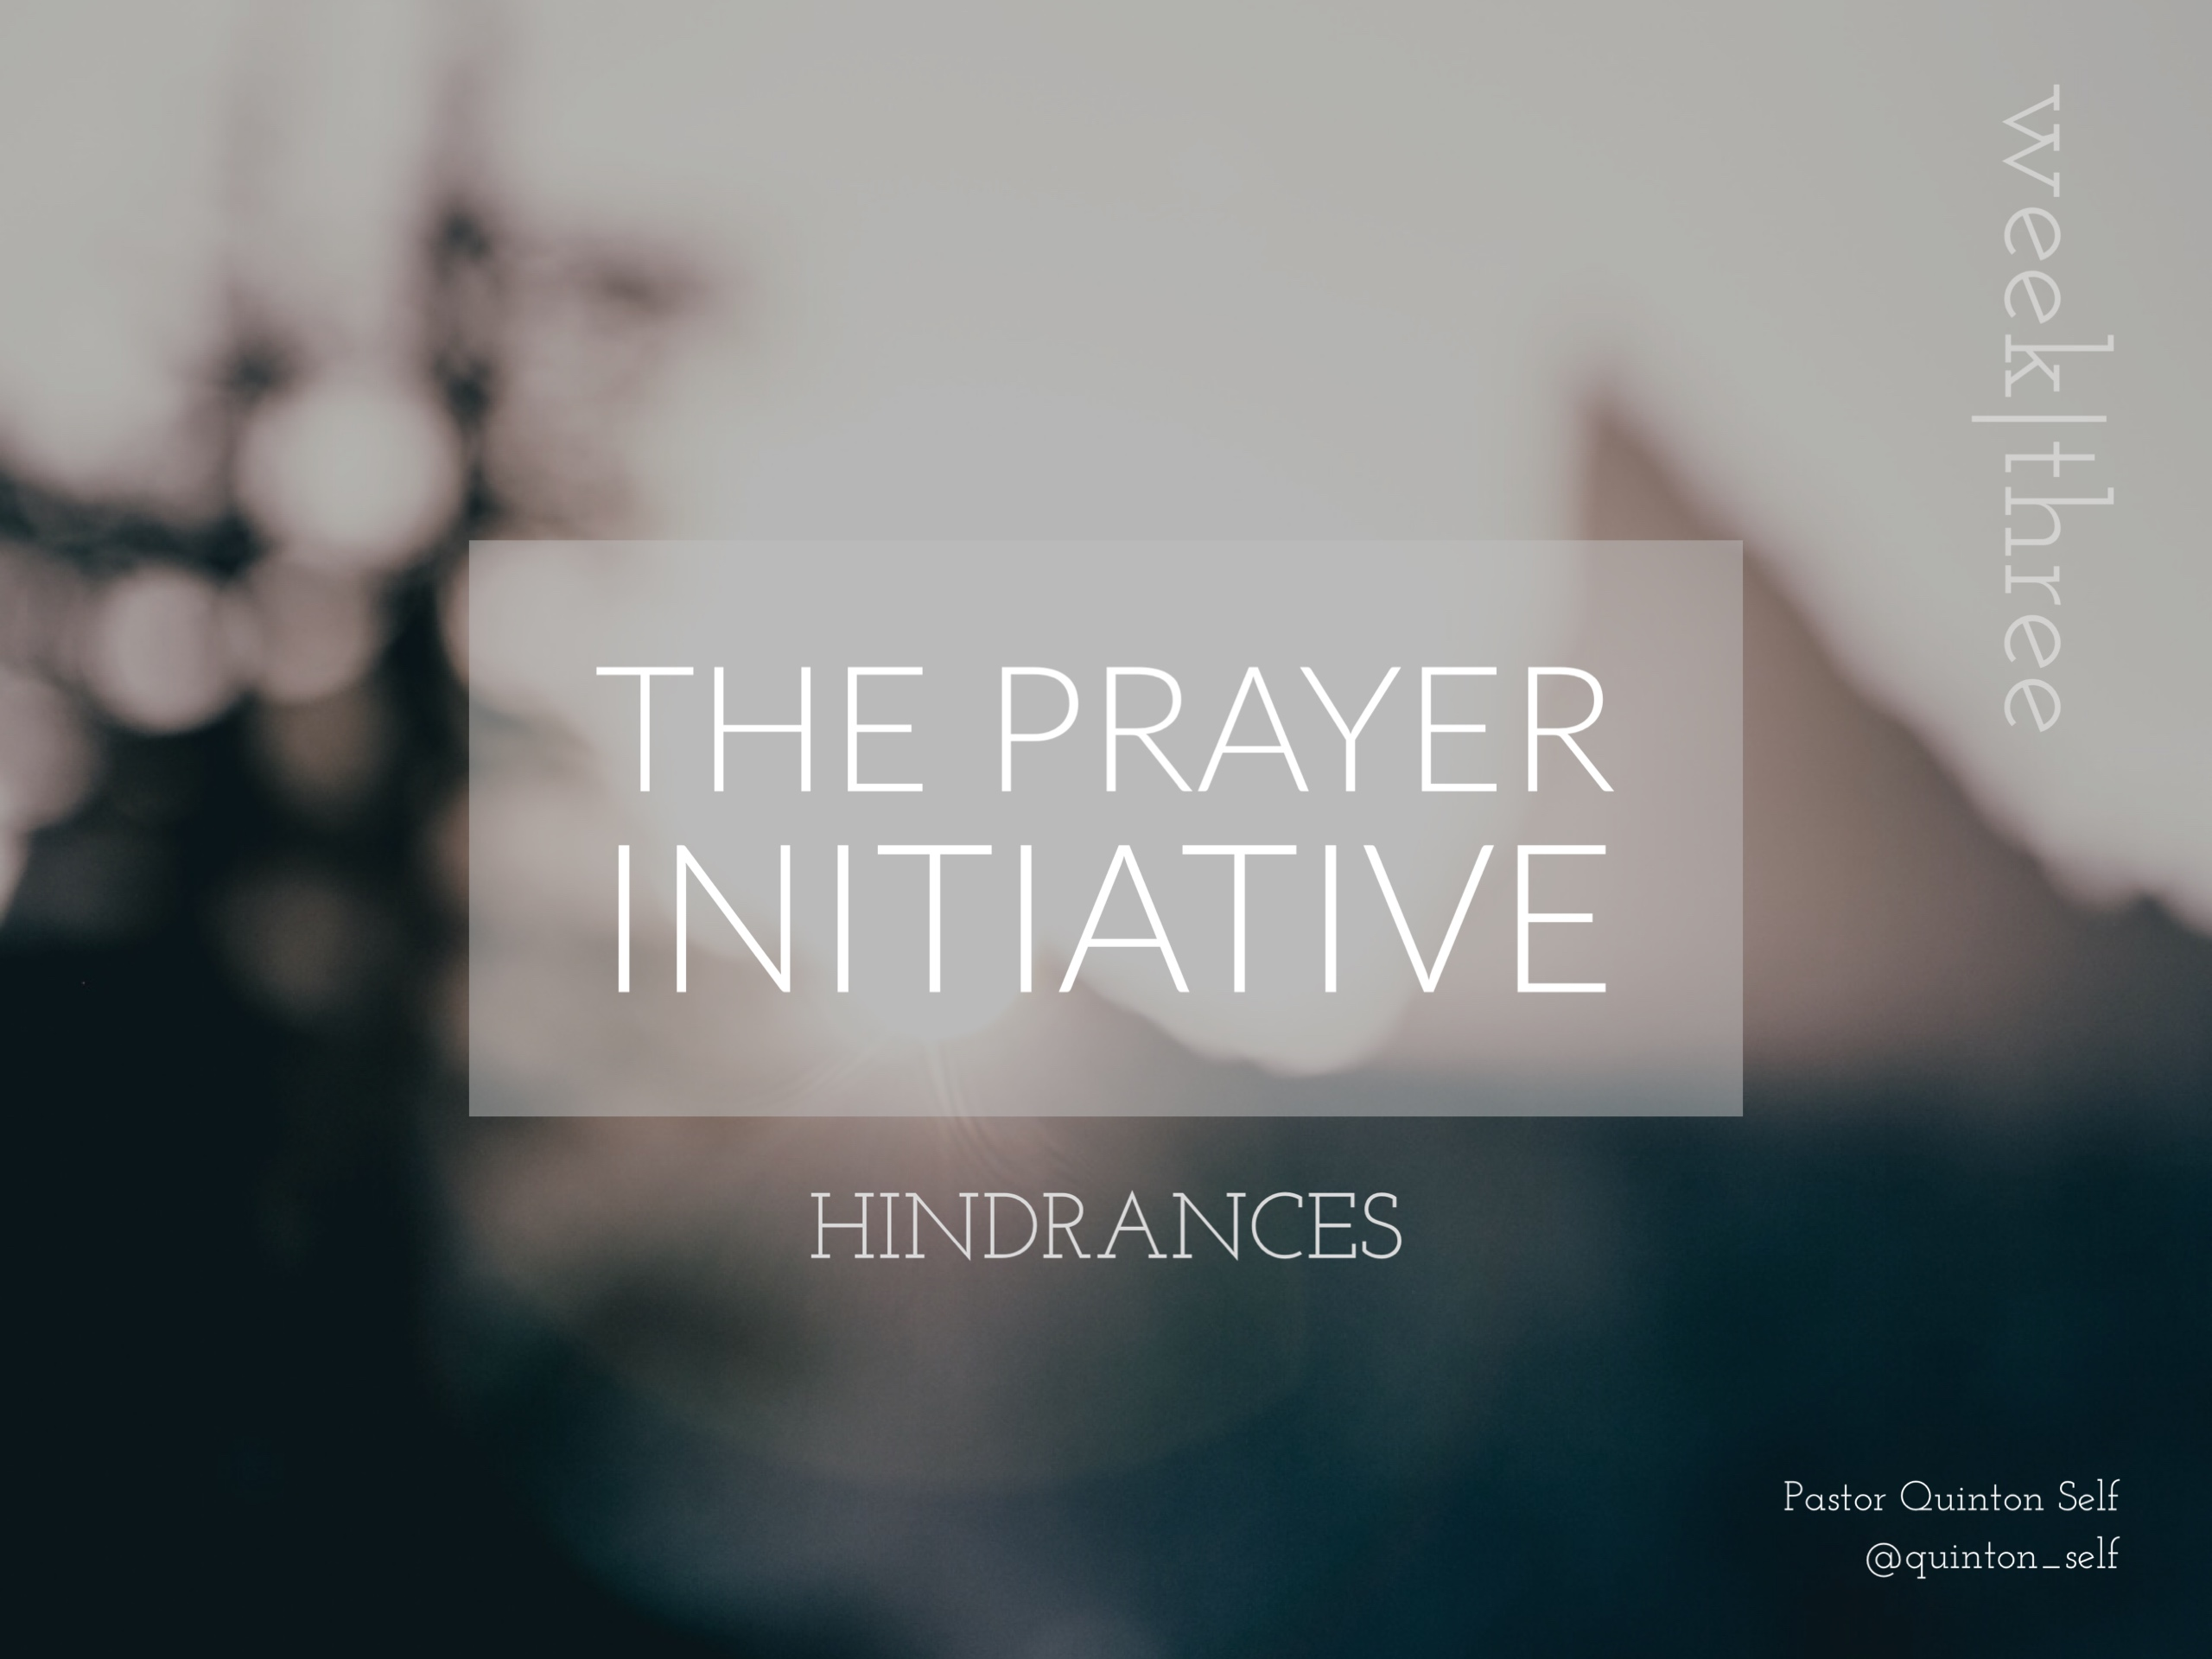 The Prayer Initiative, Pt. 3 - Hindrances